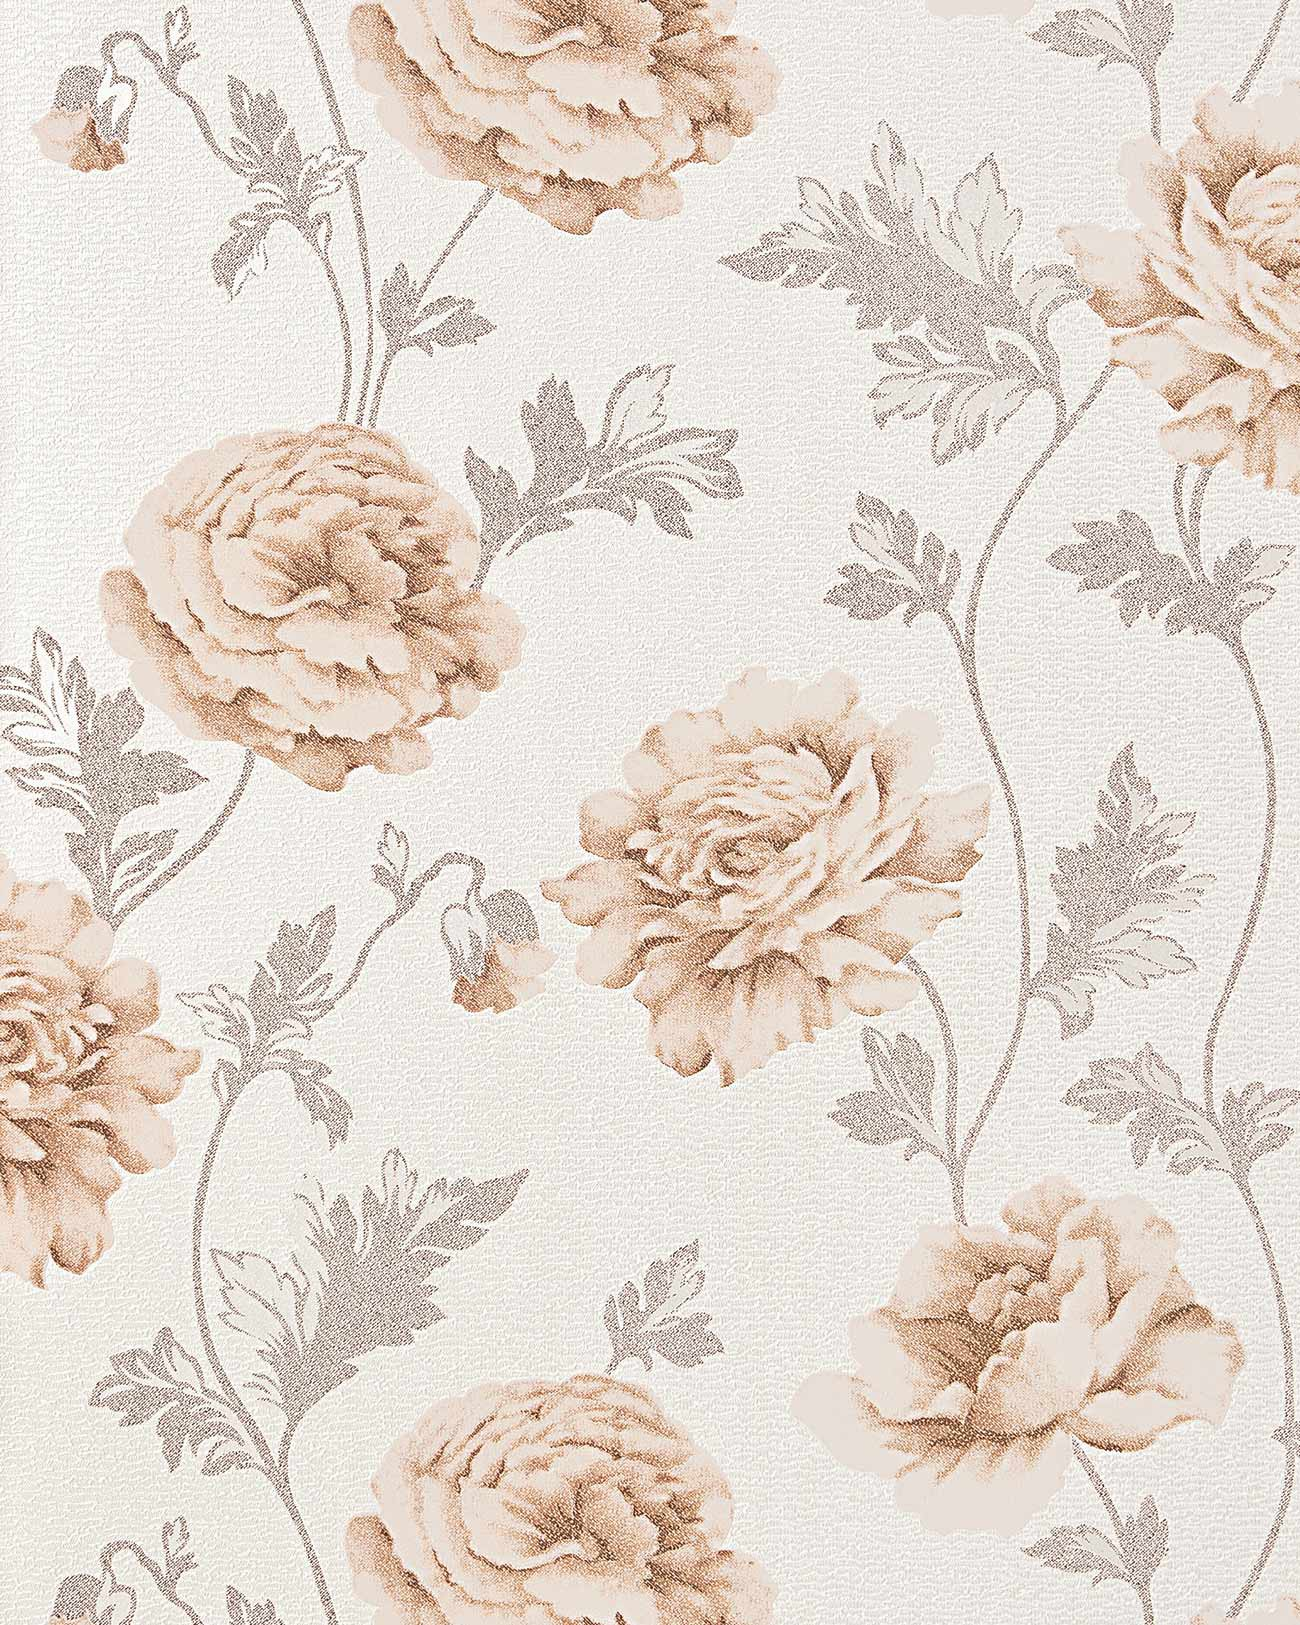 Romantic Wall Covering Flower Floral Vinyl Wallpaper Edem 086 23